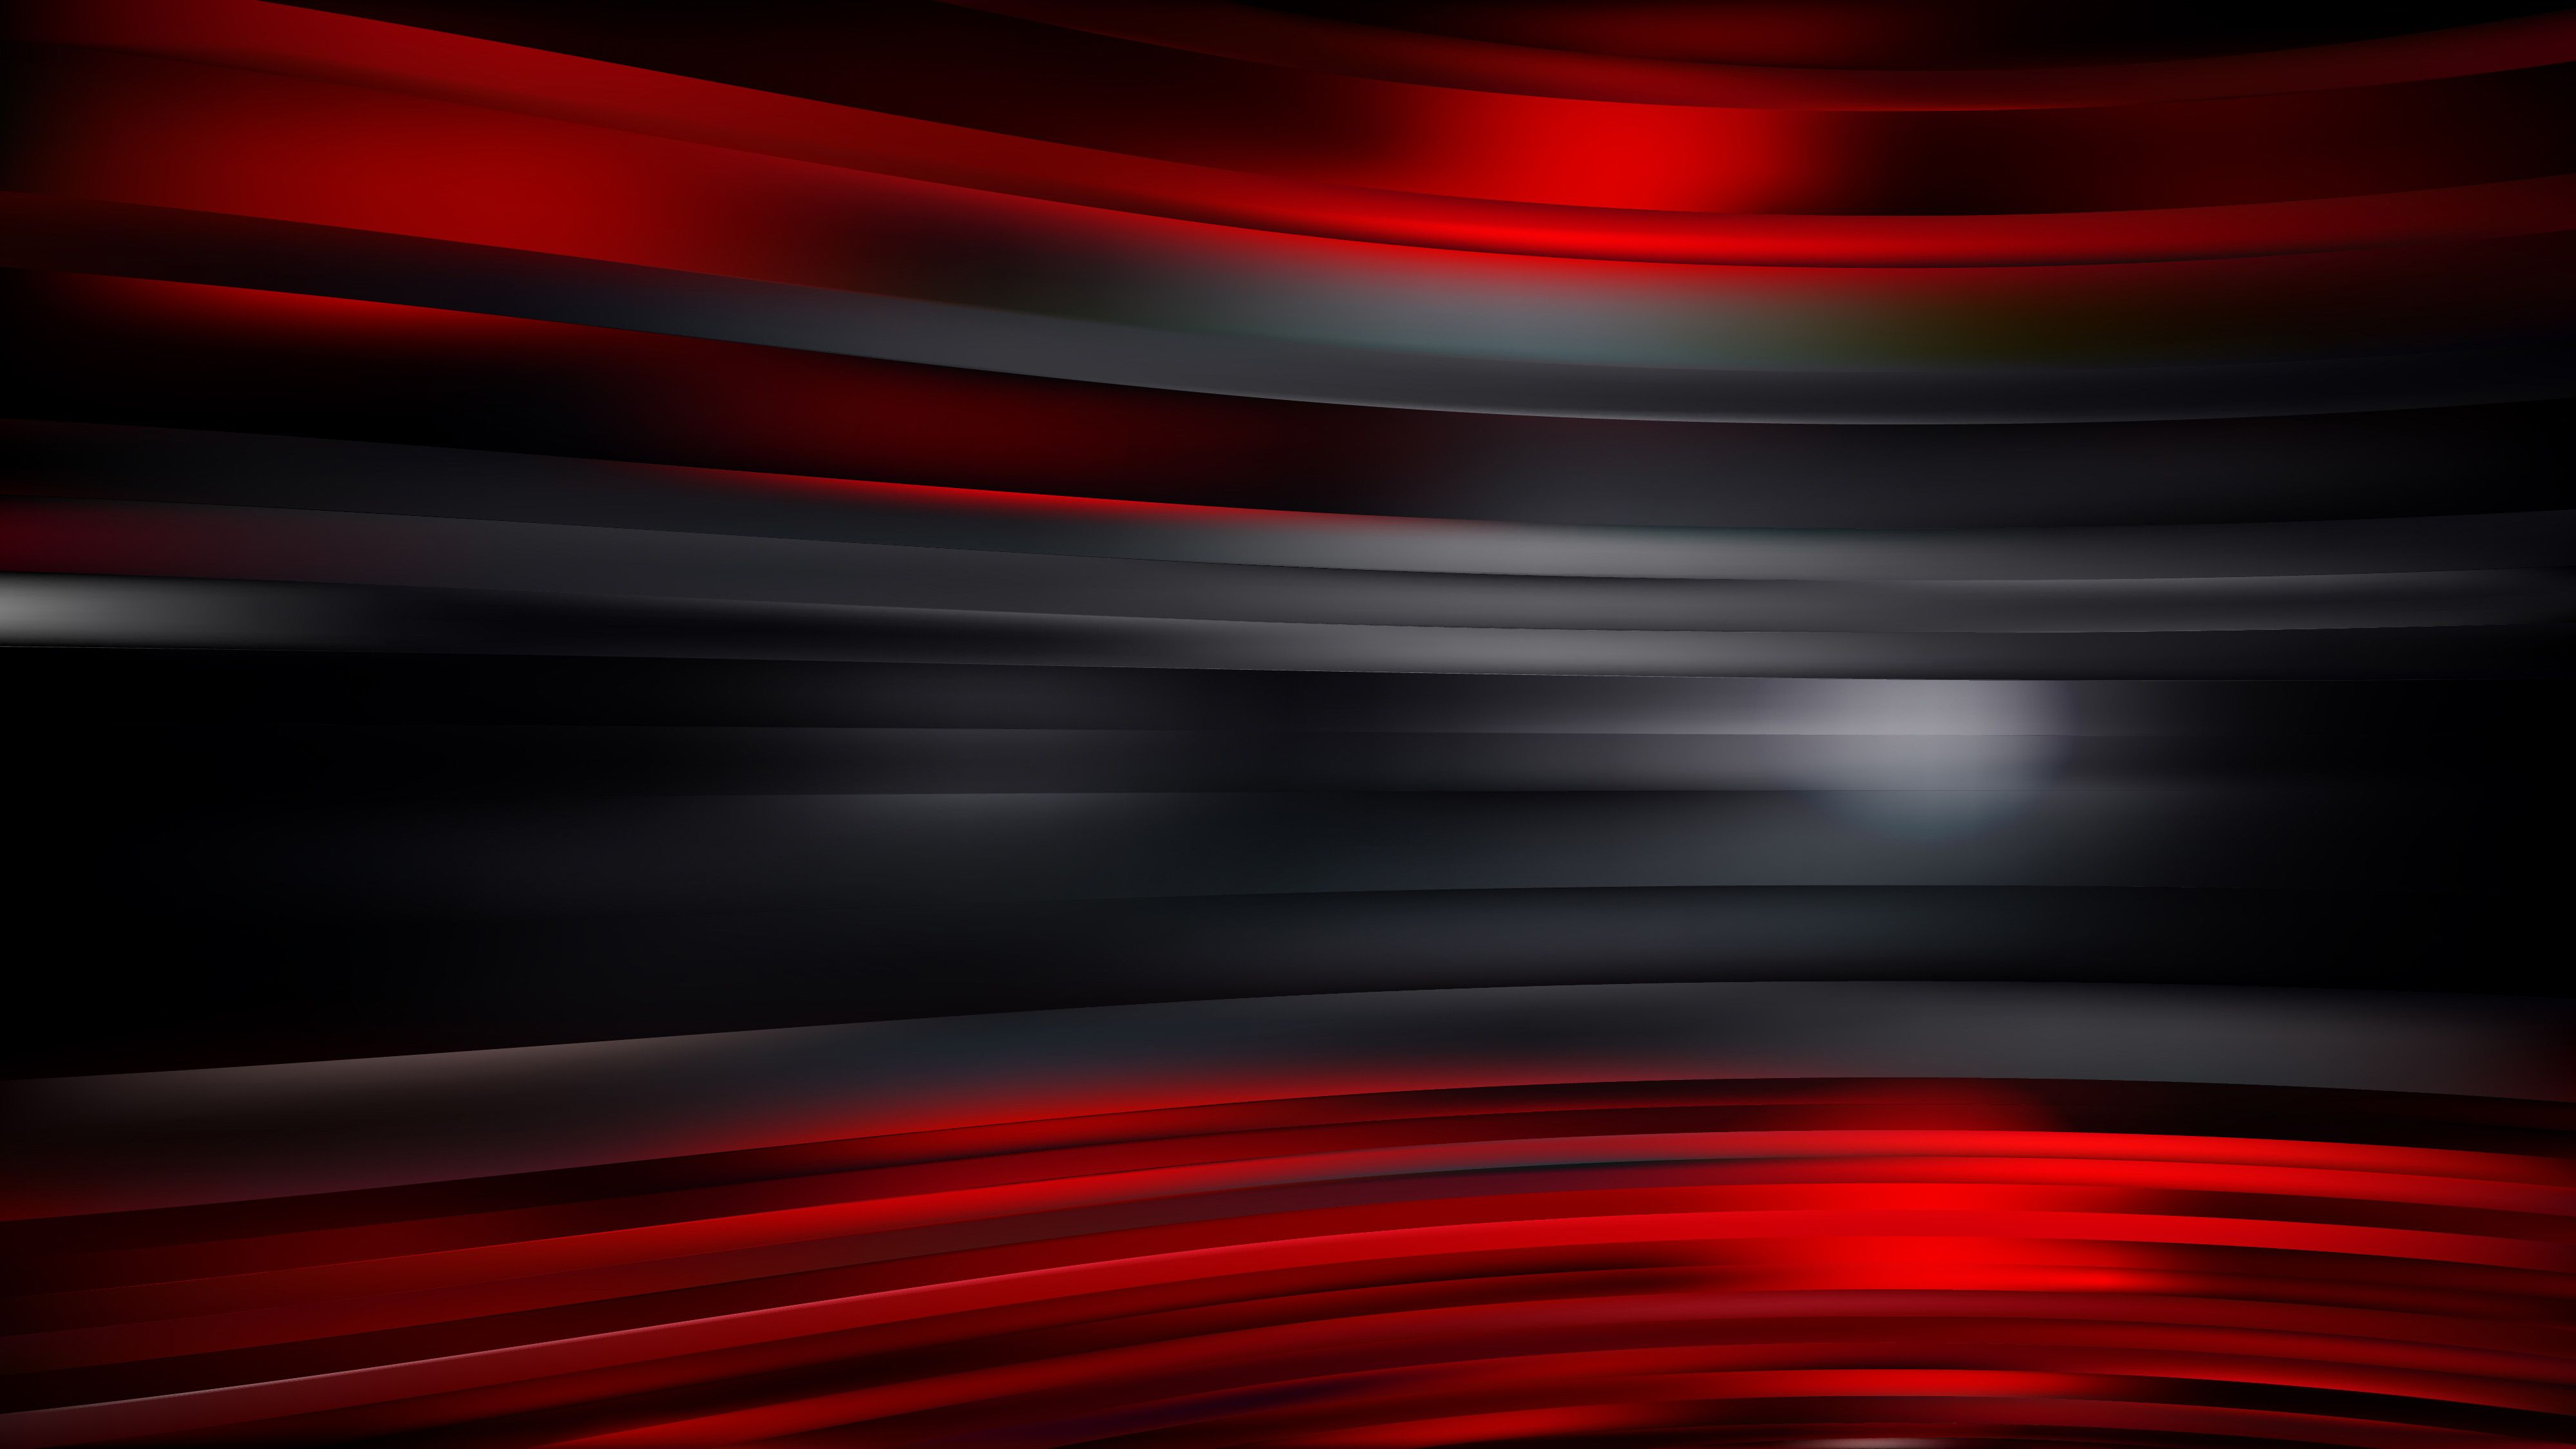 Red Black Light Free Background Image Design Graphicdesign Creative Wallpaper Backgrou Free Background Images Background Images Red Background Images